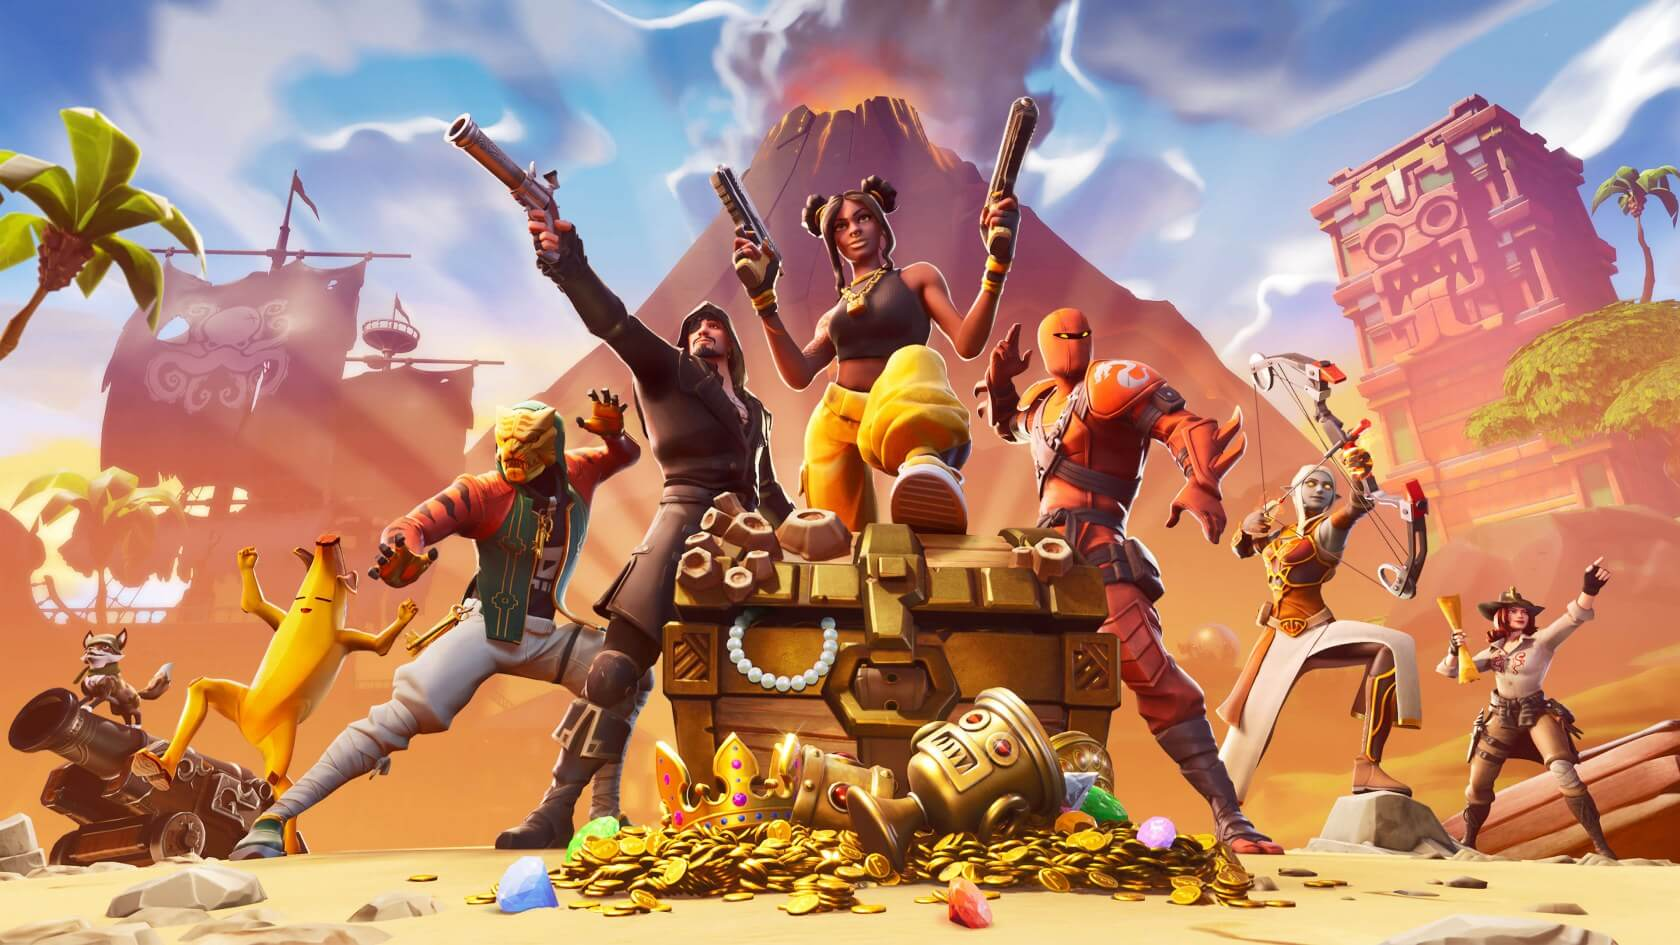 Fortnite now boasts over 350 million registered players